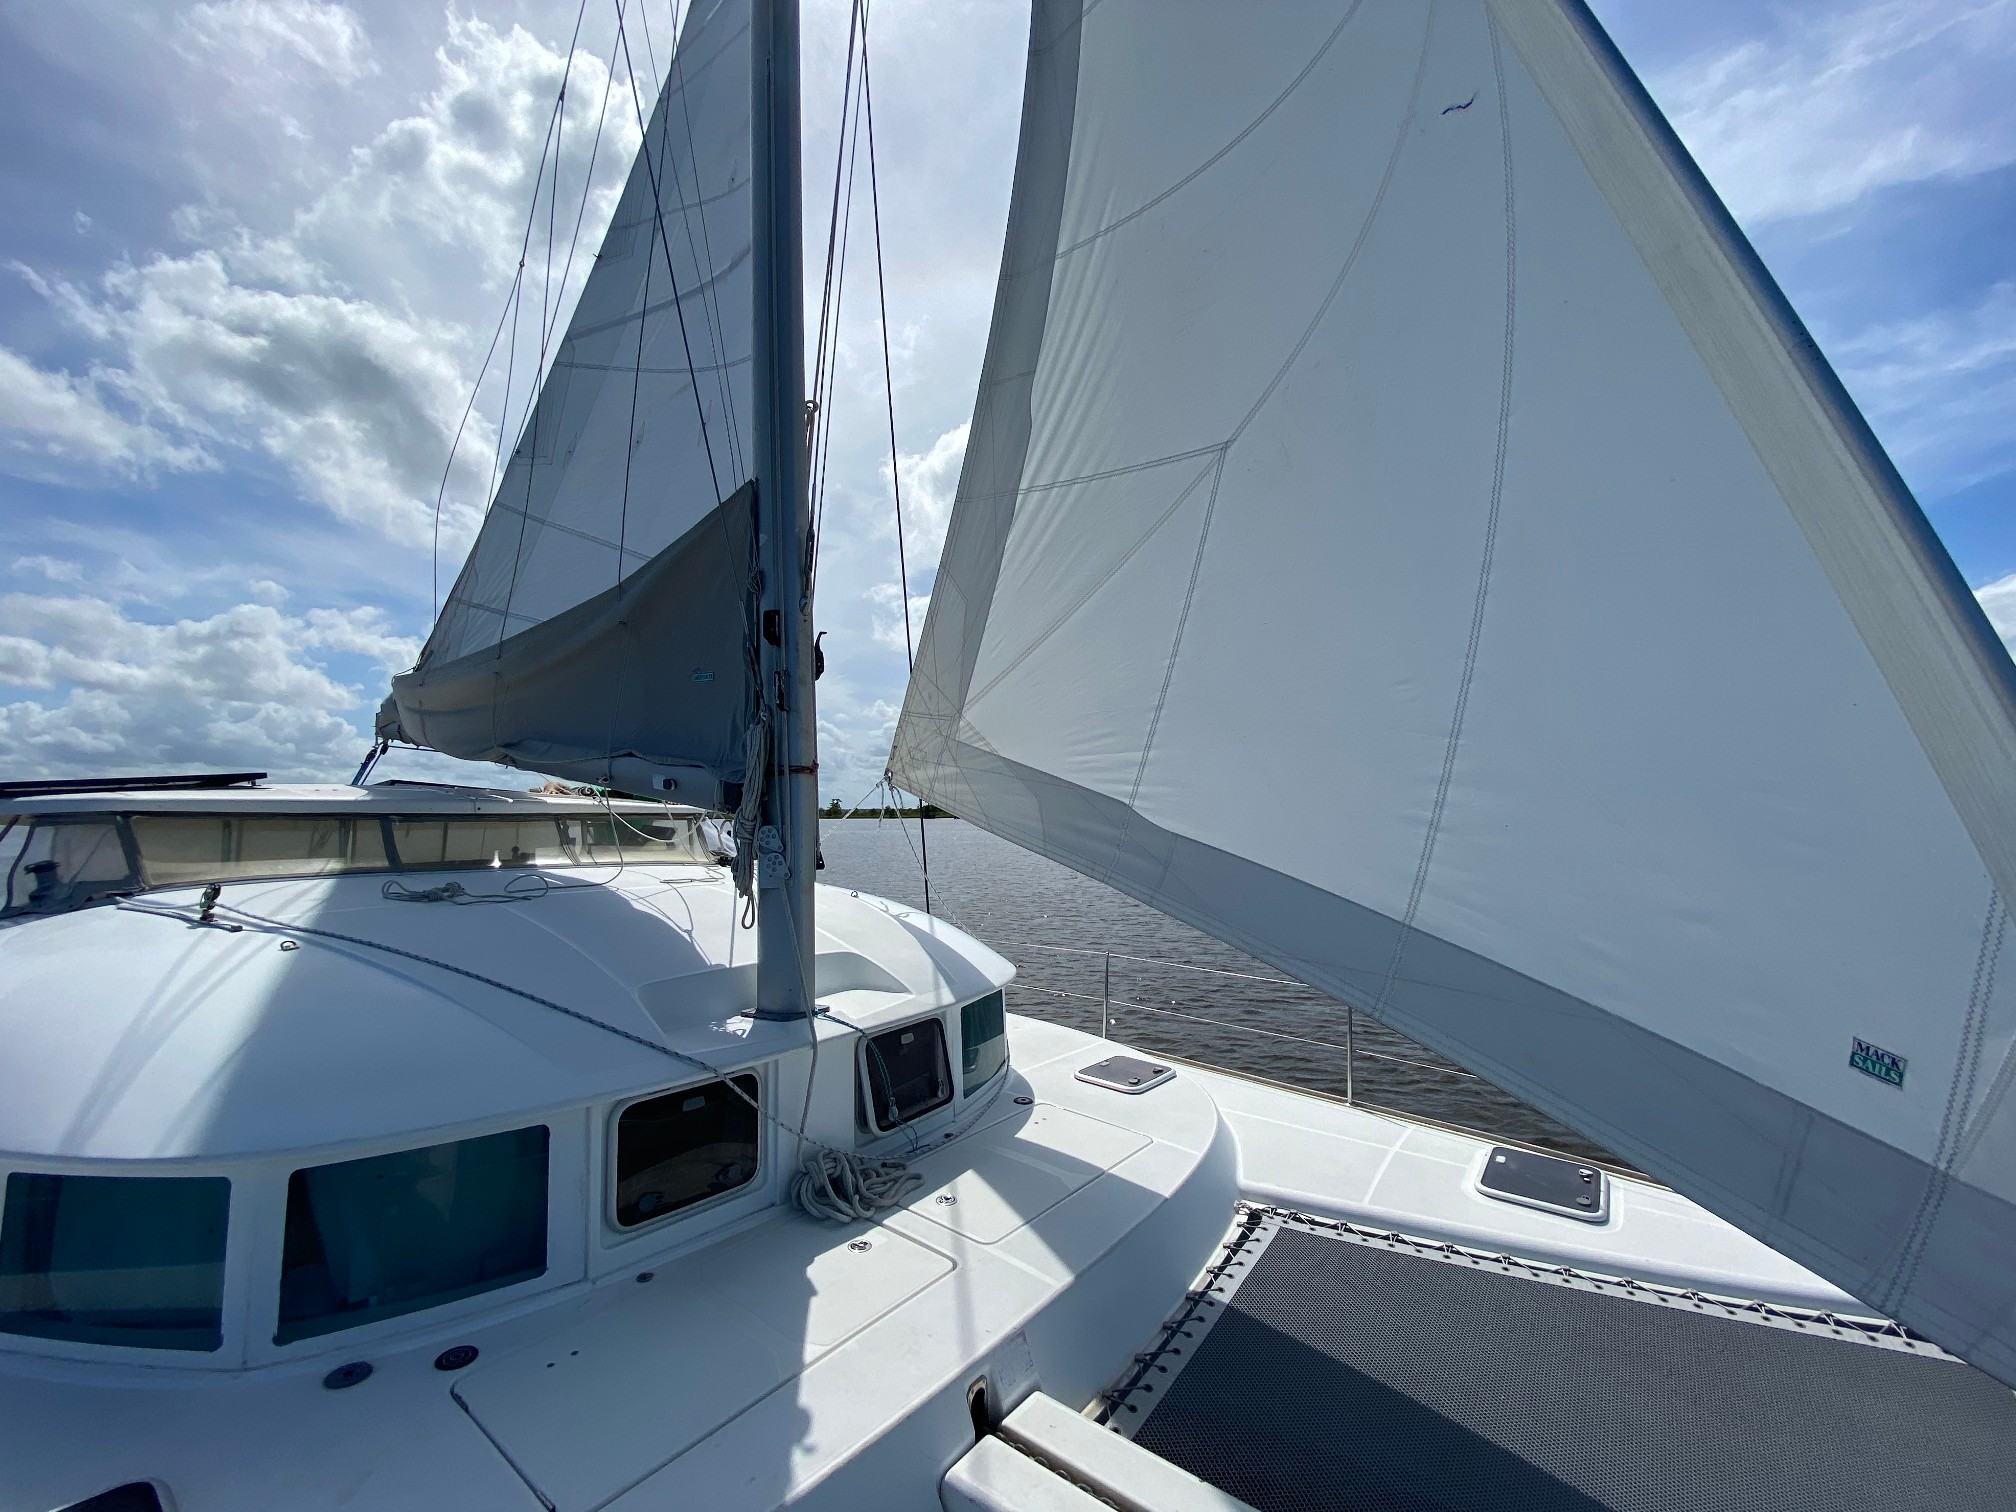 Used Sail Catamaran for Sale 2005 Lagoon 380 S2 Sails & Rigging